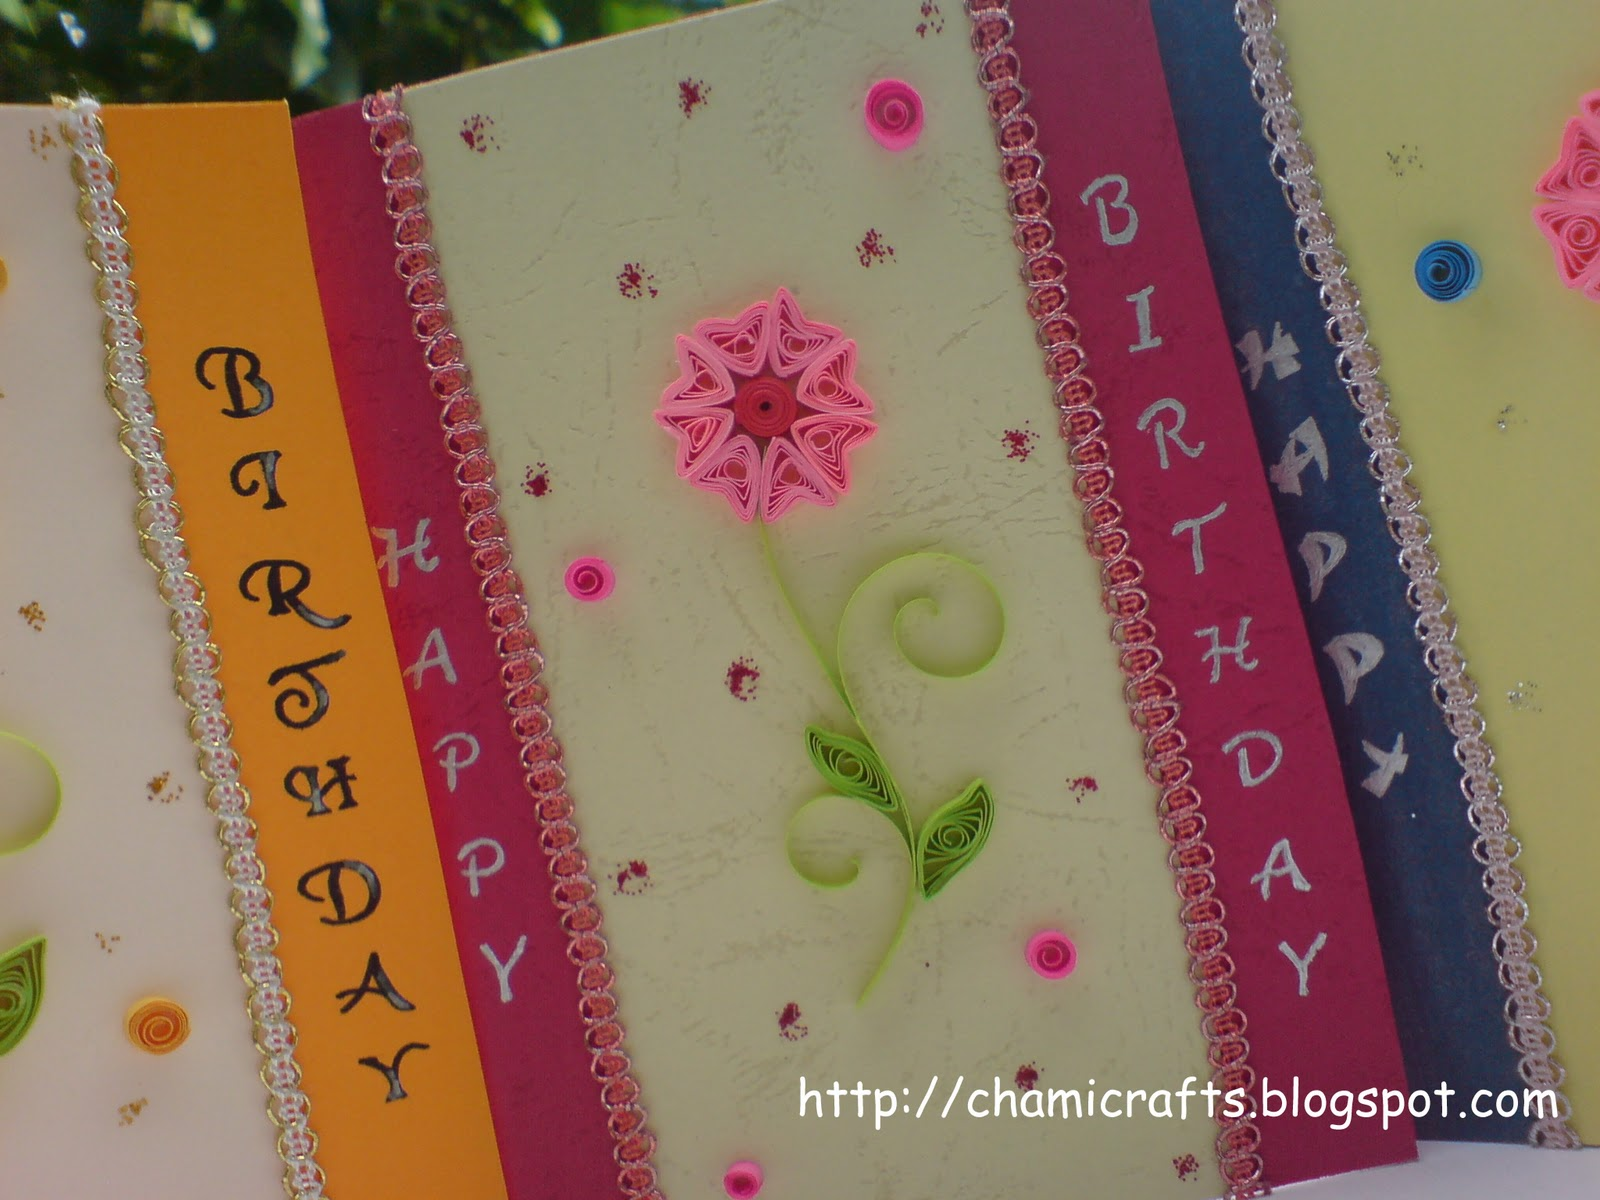 Chami crafts handmade greeting cards one design with different one design with different colors m4hsunfo